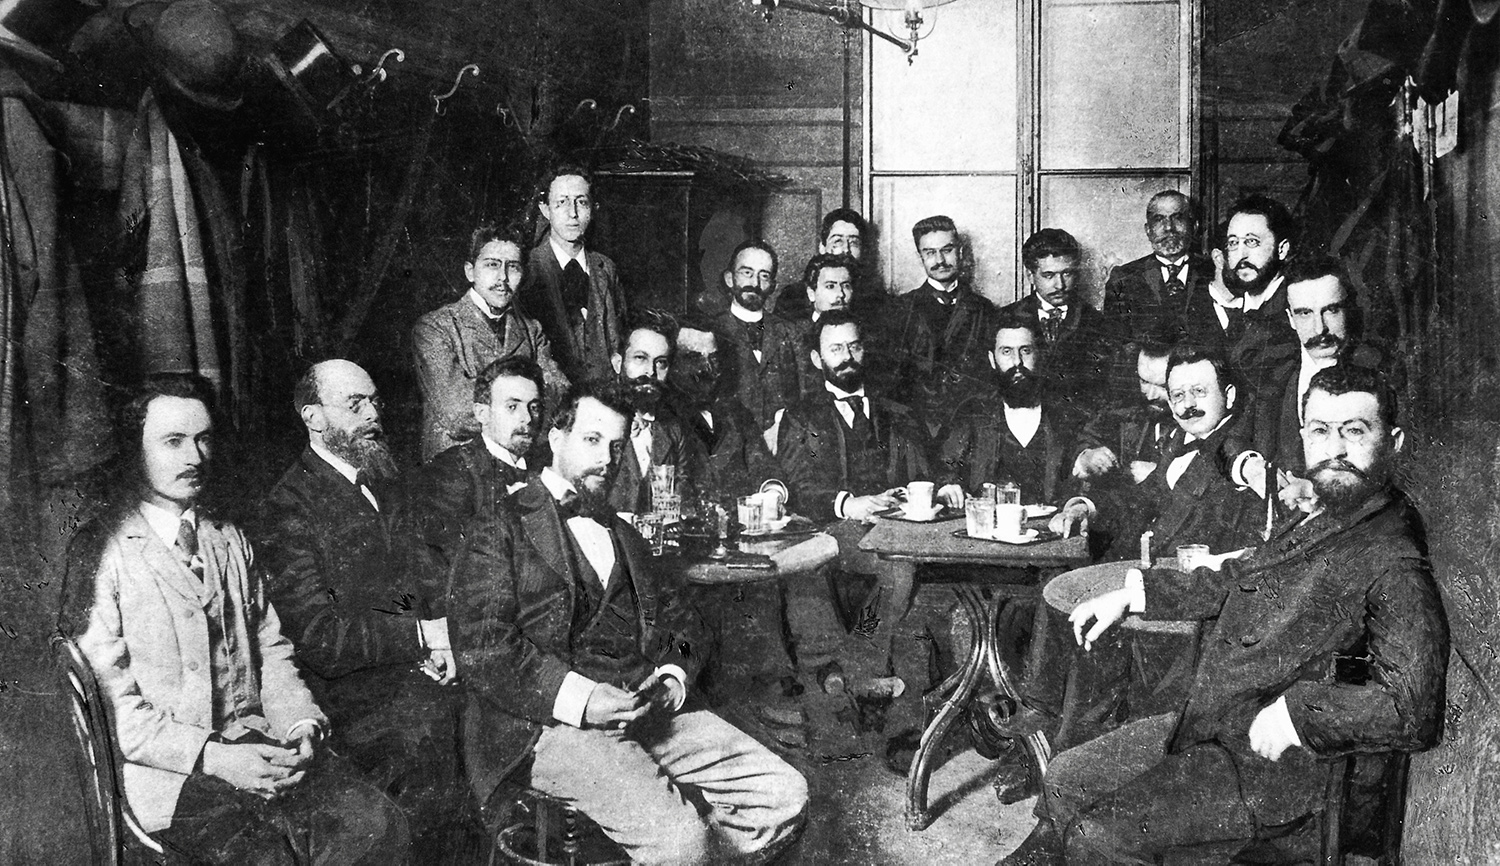 Theodor Herzl and other Viennese Zionists in the Cafe Louvre in 1896. Imagno/Getty Images.